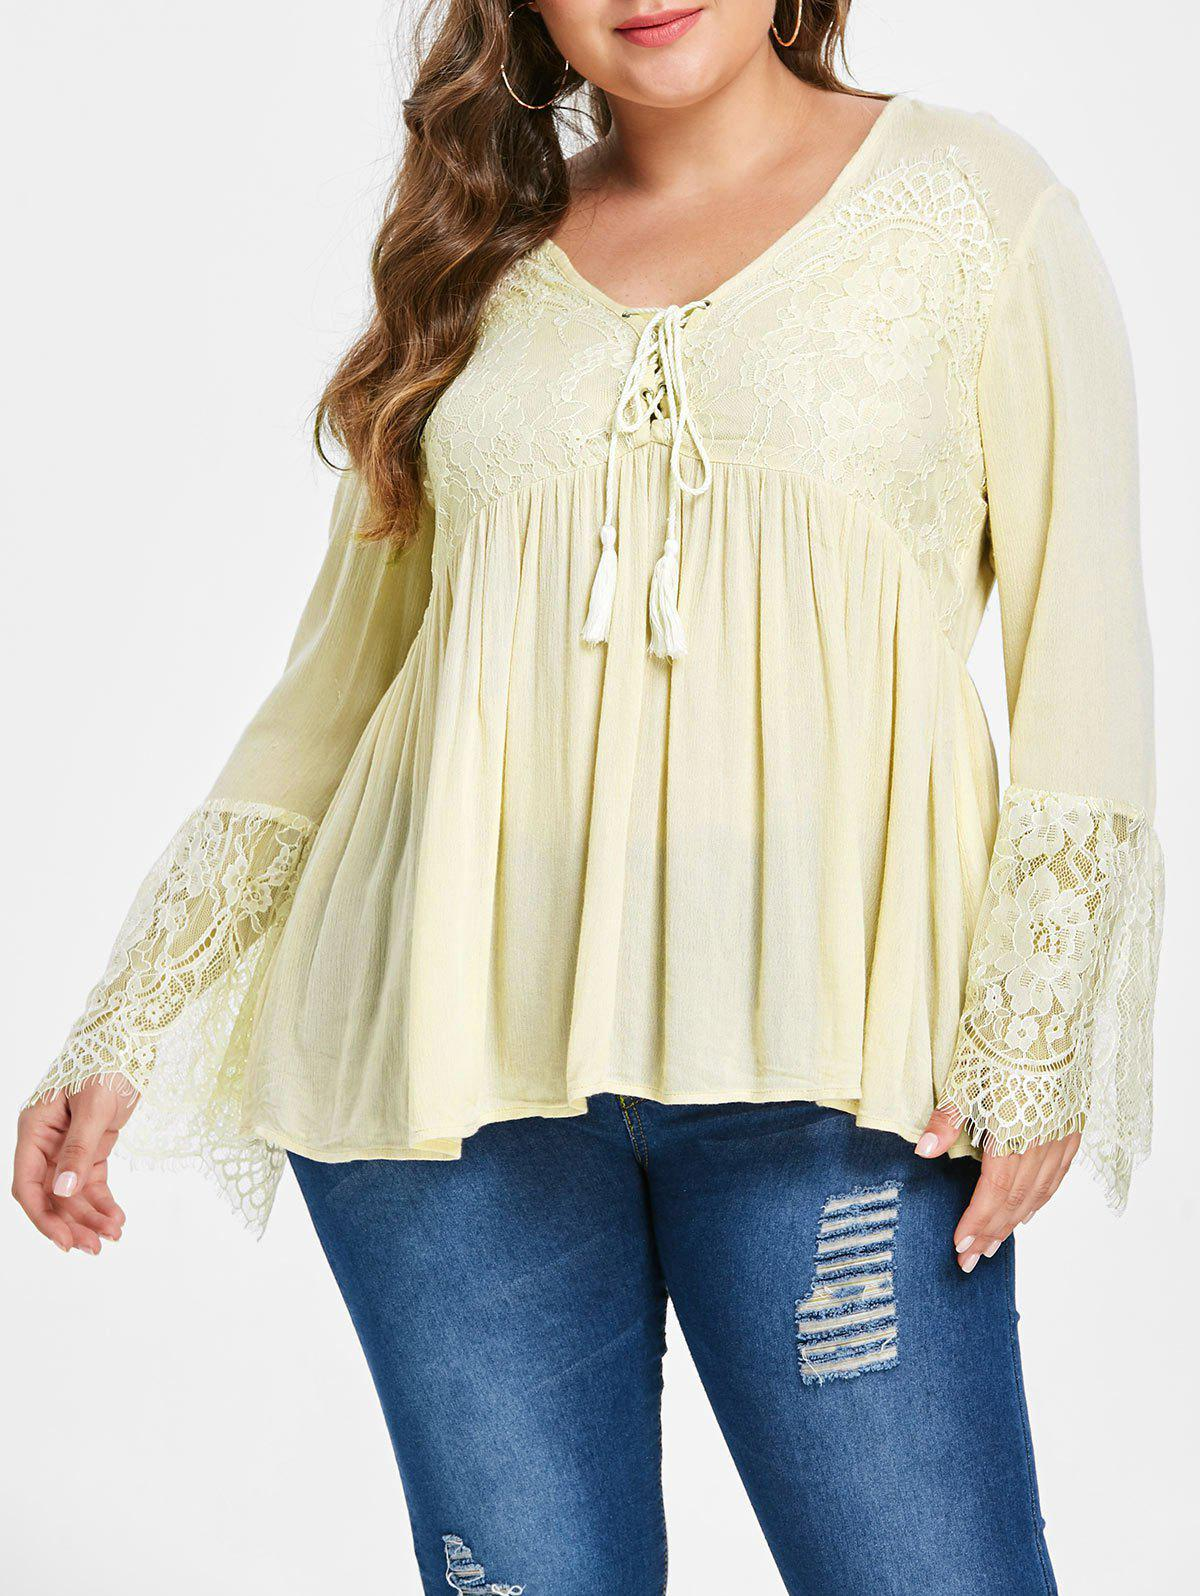 New Lace Panel Lace Up Plus Size Blouse